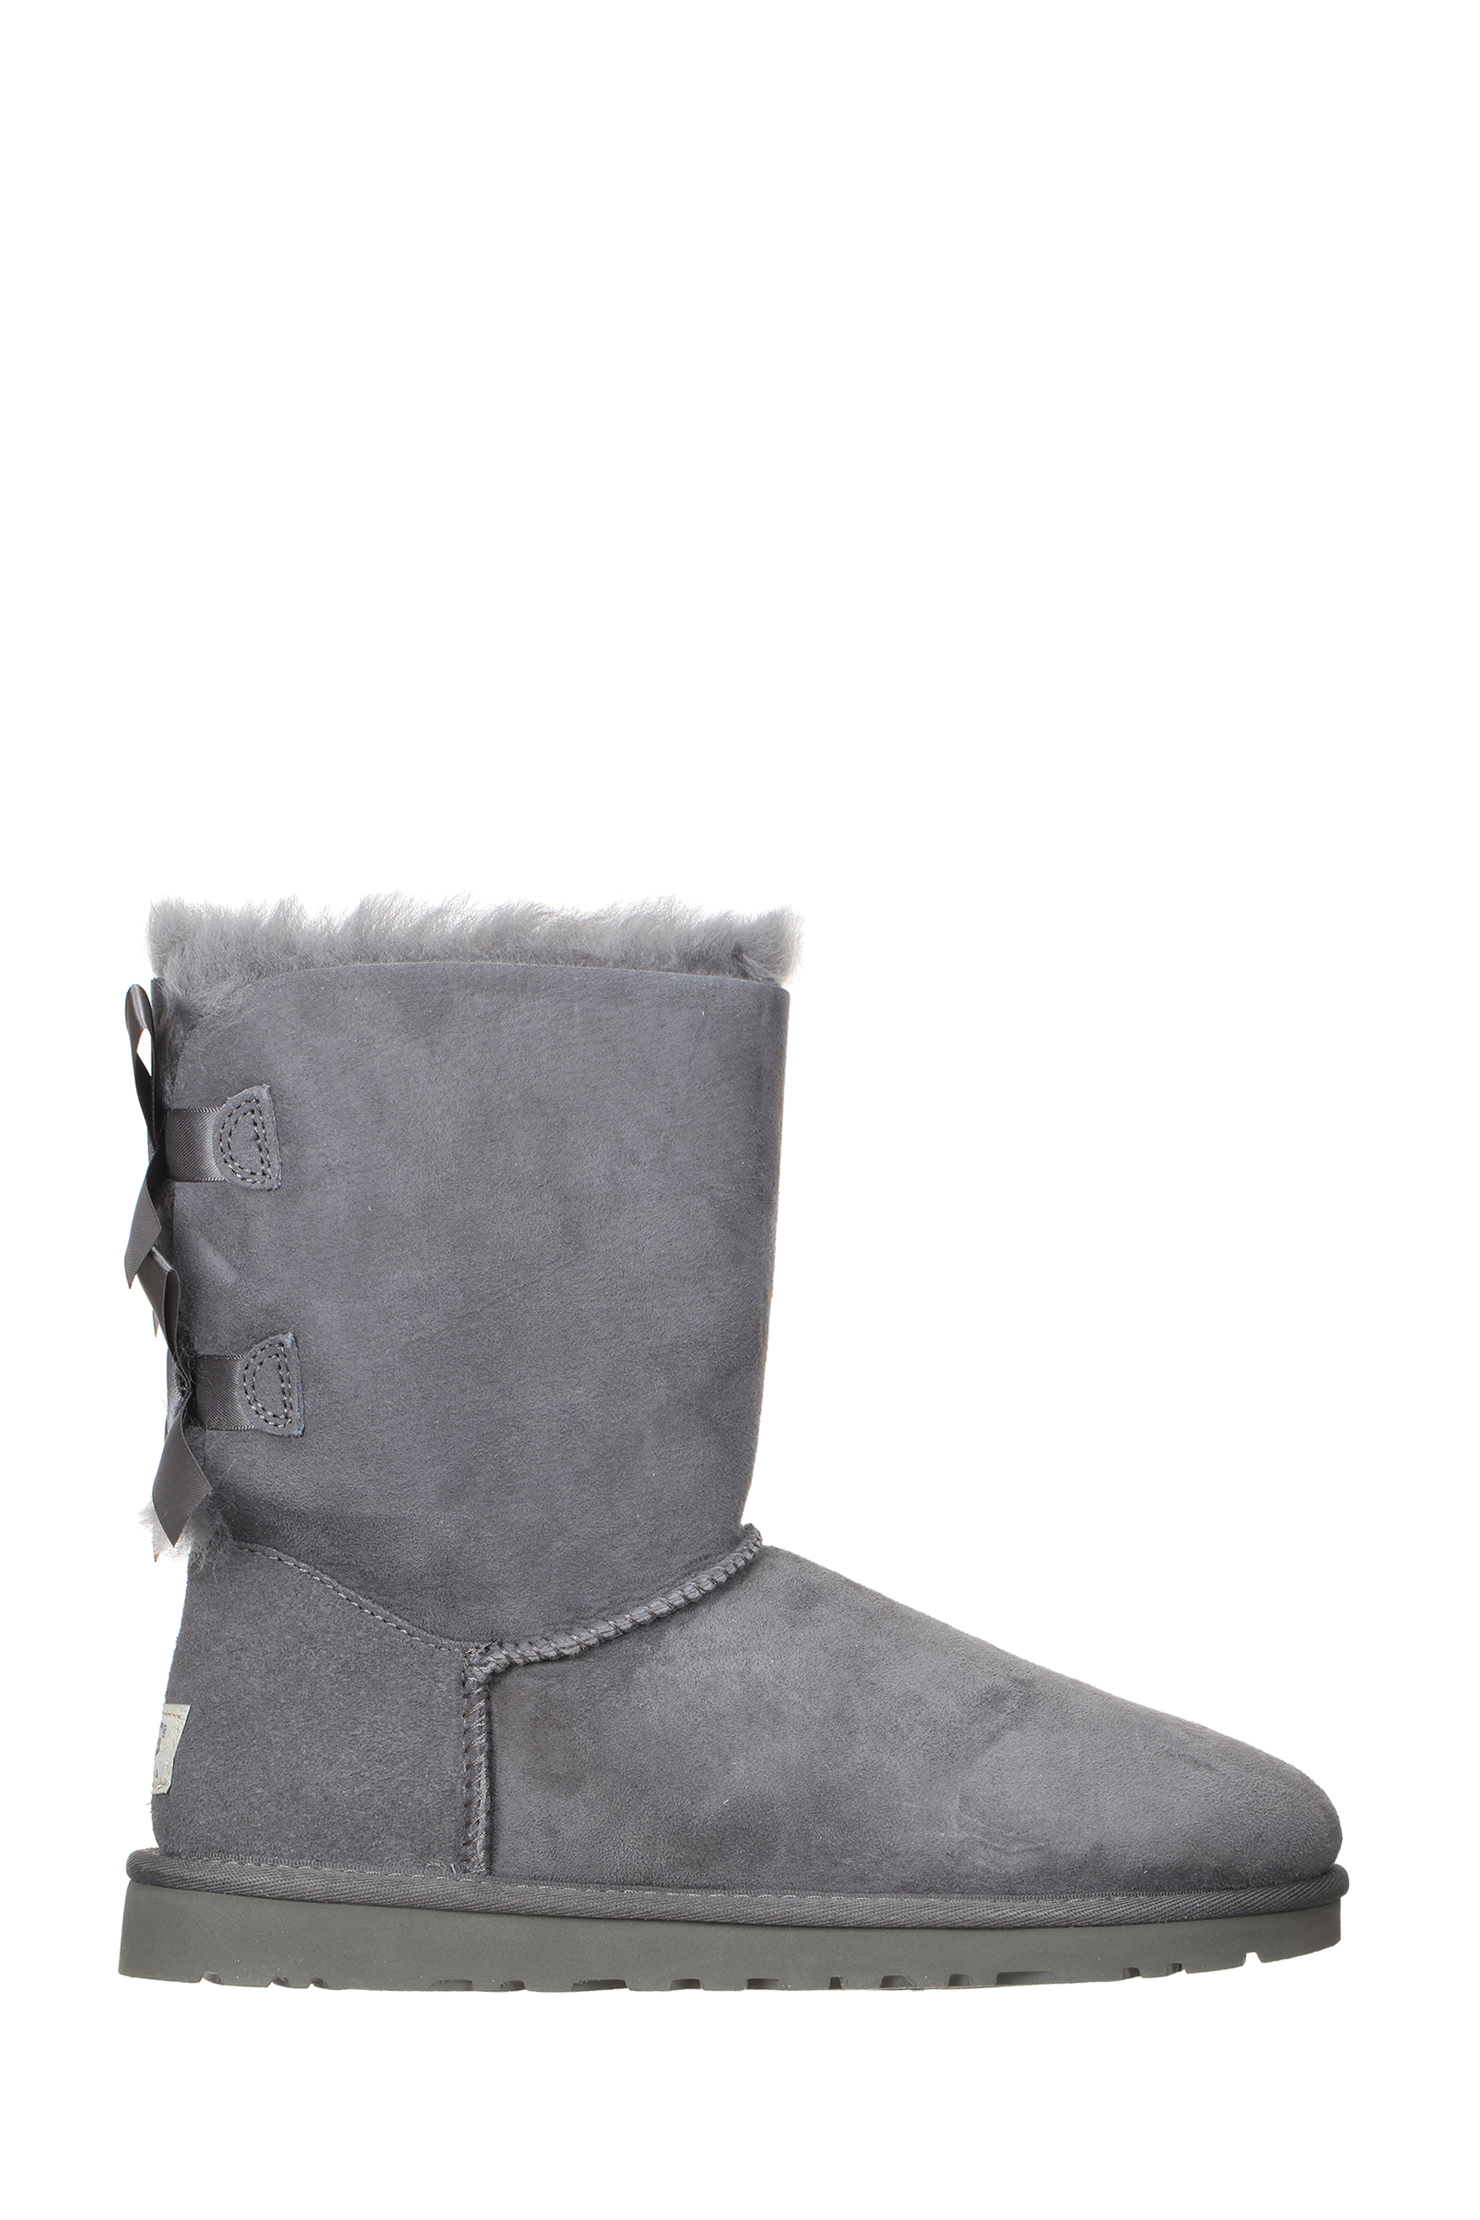 9349657299c Bailey Bow Ugg Boots Gray - cheap watches mgc-gas.com